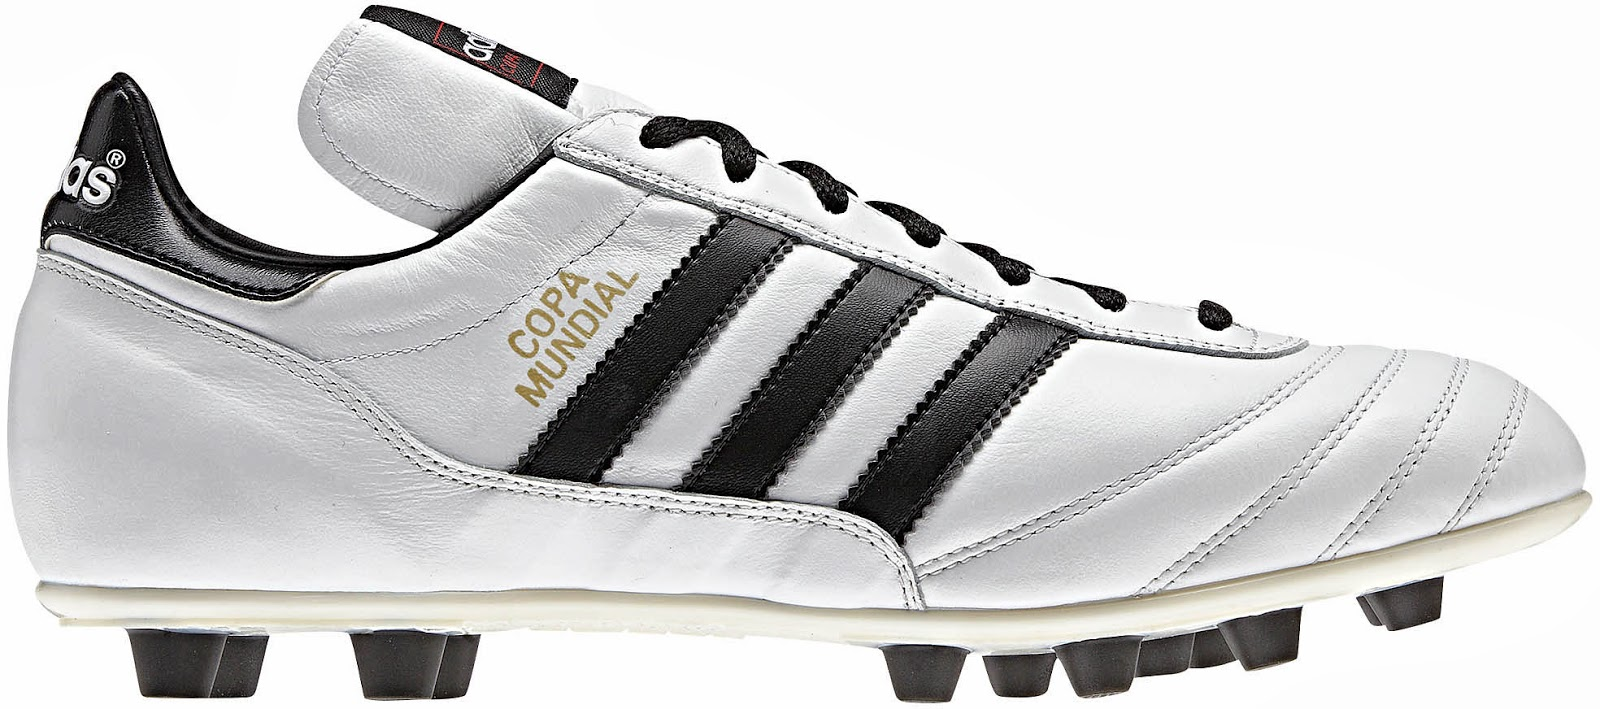 adidas copa mundial black and white